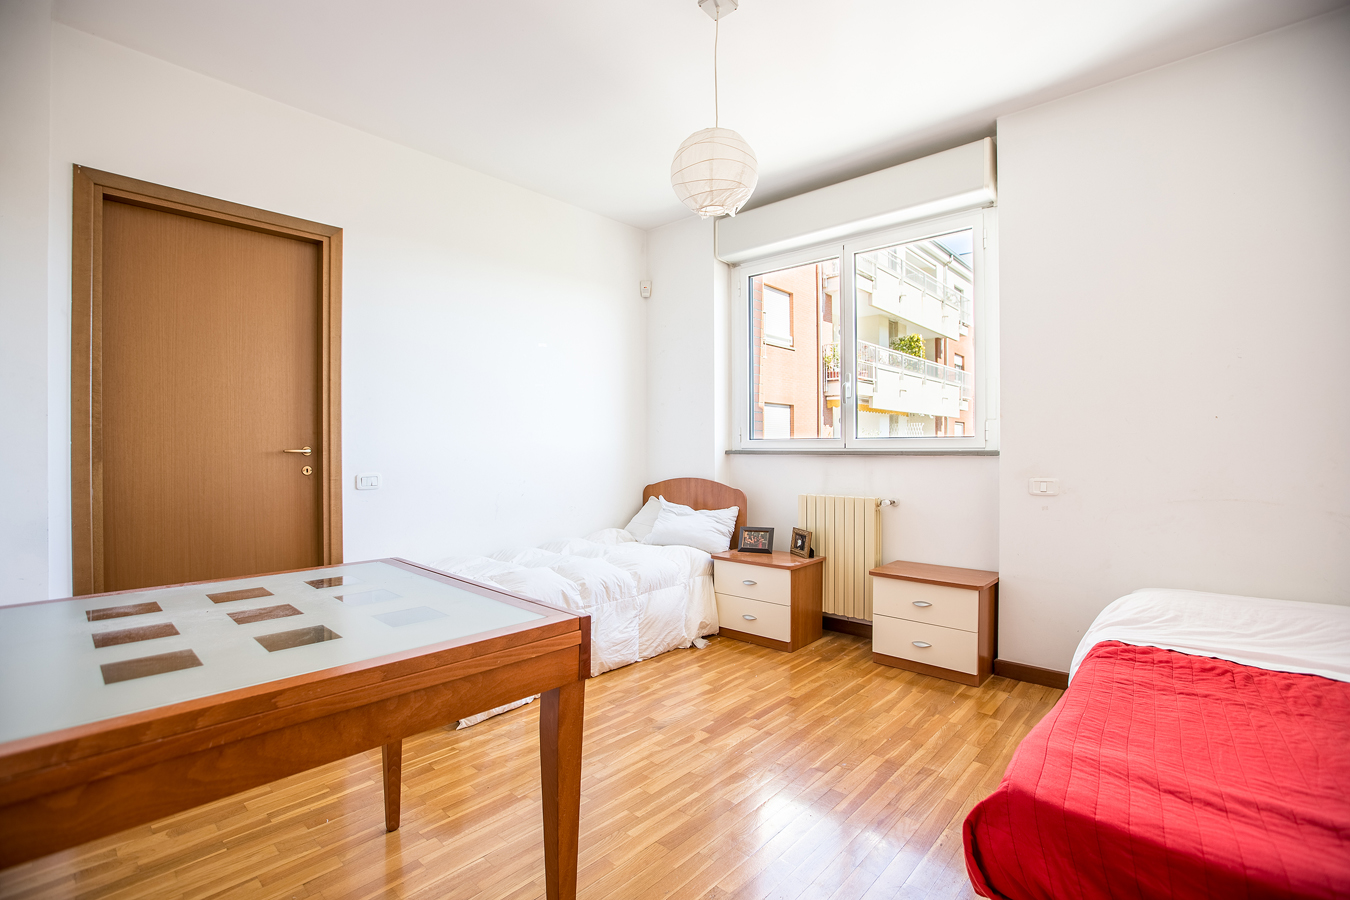 Student Accomodation for rent in double room in Via Carlo Perini, 18, in Milano, Italy